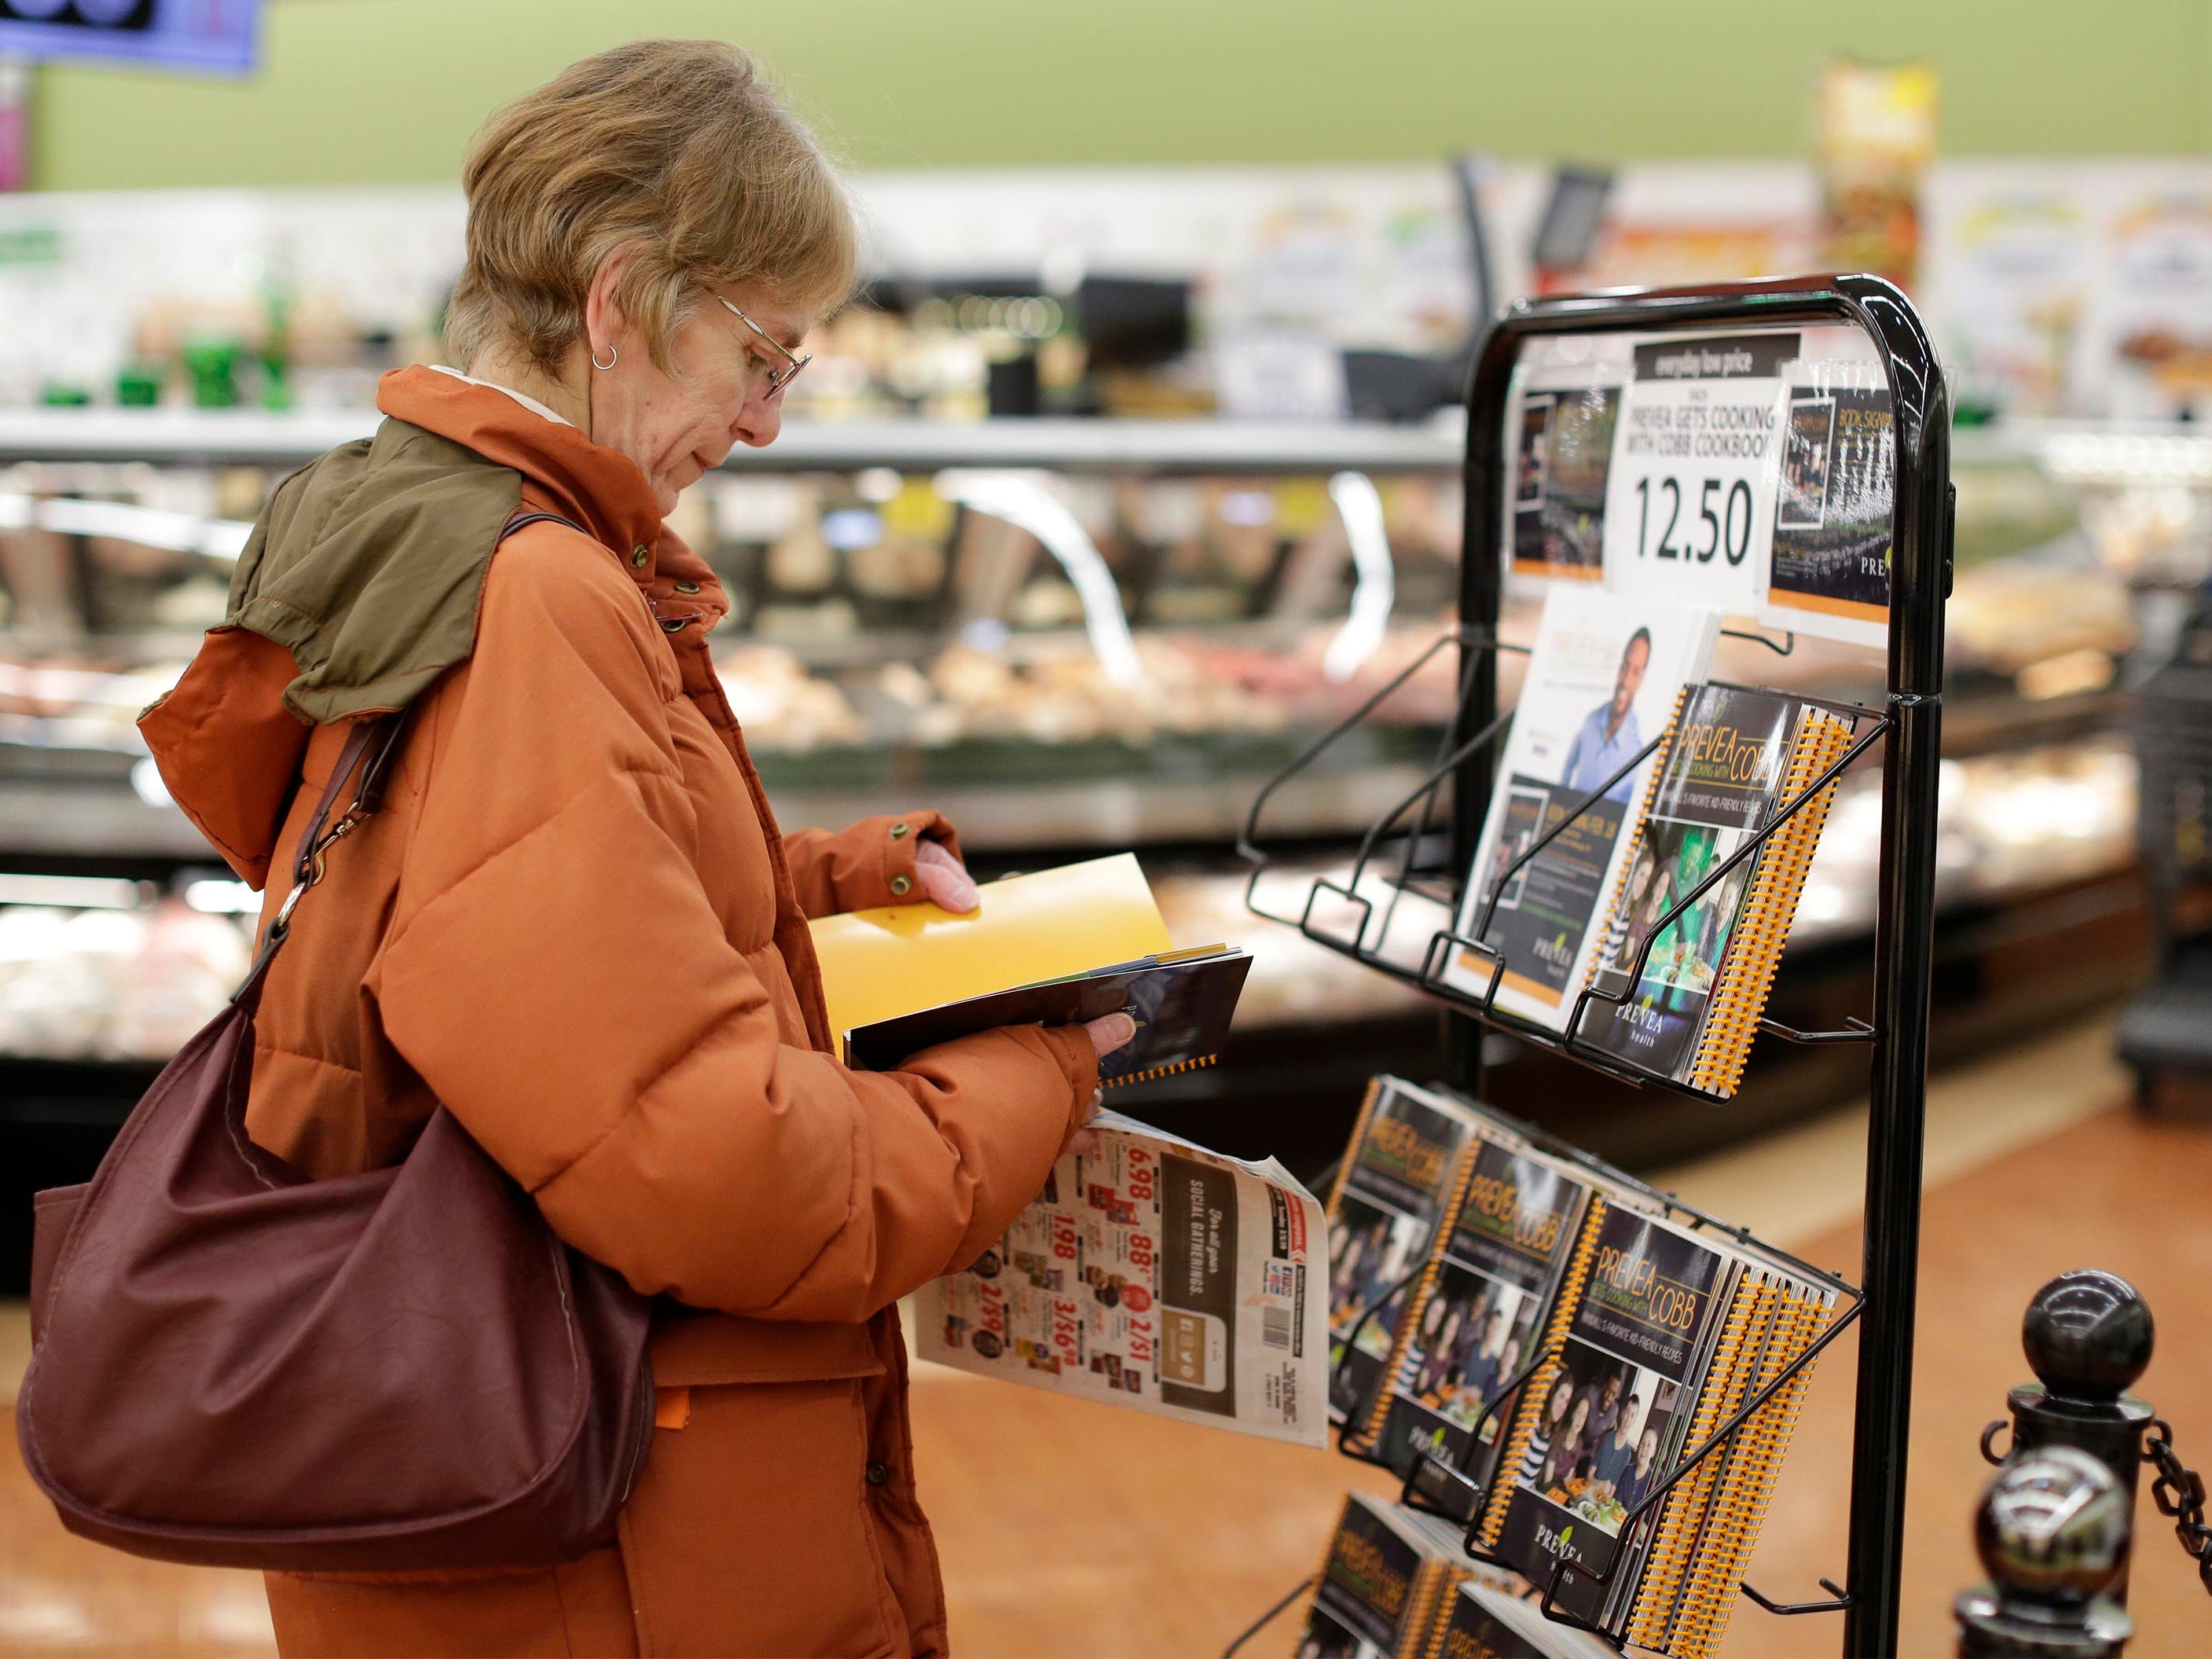 """Judy Bonnett of Parnell, Wis., looks over a copy of """"Prevea Gets Cooking with Cobb: Randall's Favorite Kid-Friendly Recipes"""", Thursday, February 28, 2019, in Sheboygan, Wis."""